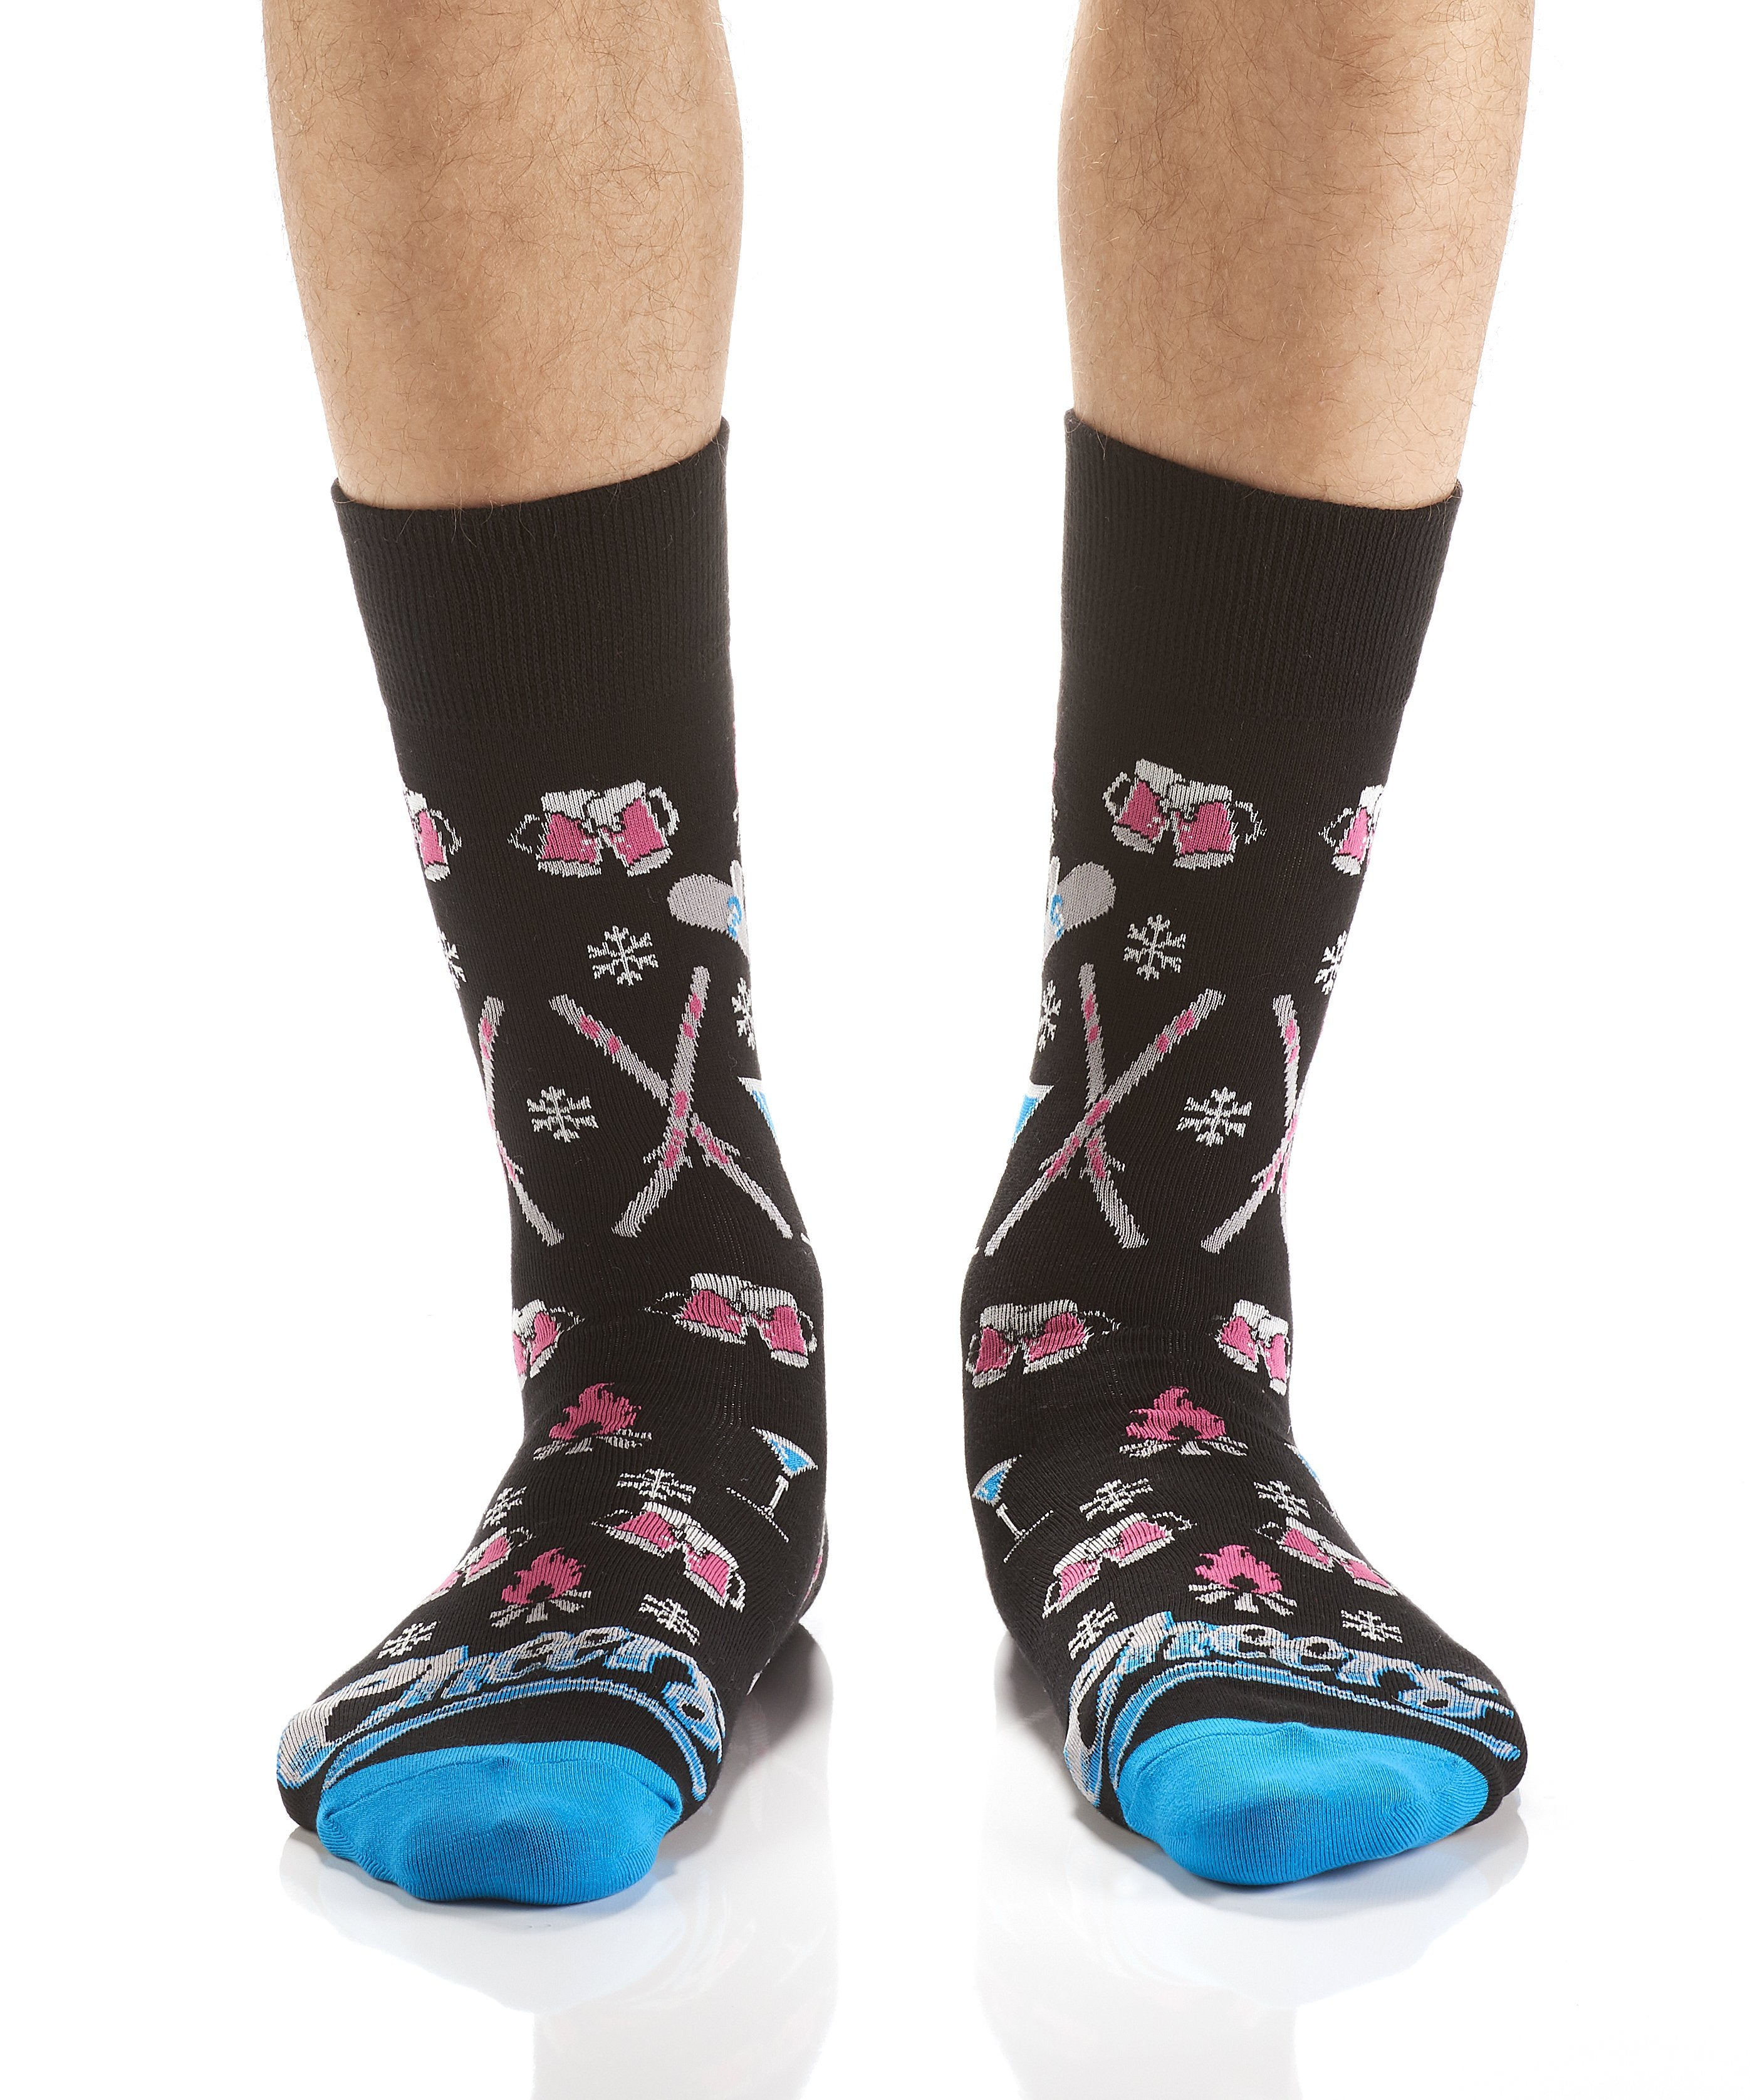 All About that Après: Men's Crew Socks - Yo Sox Canada